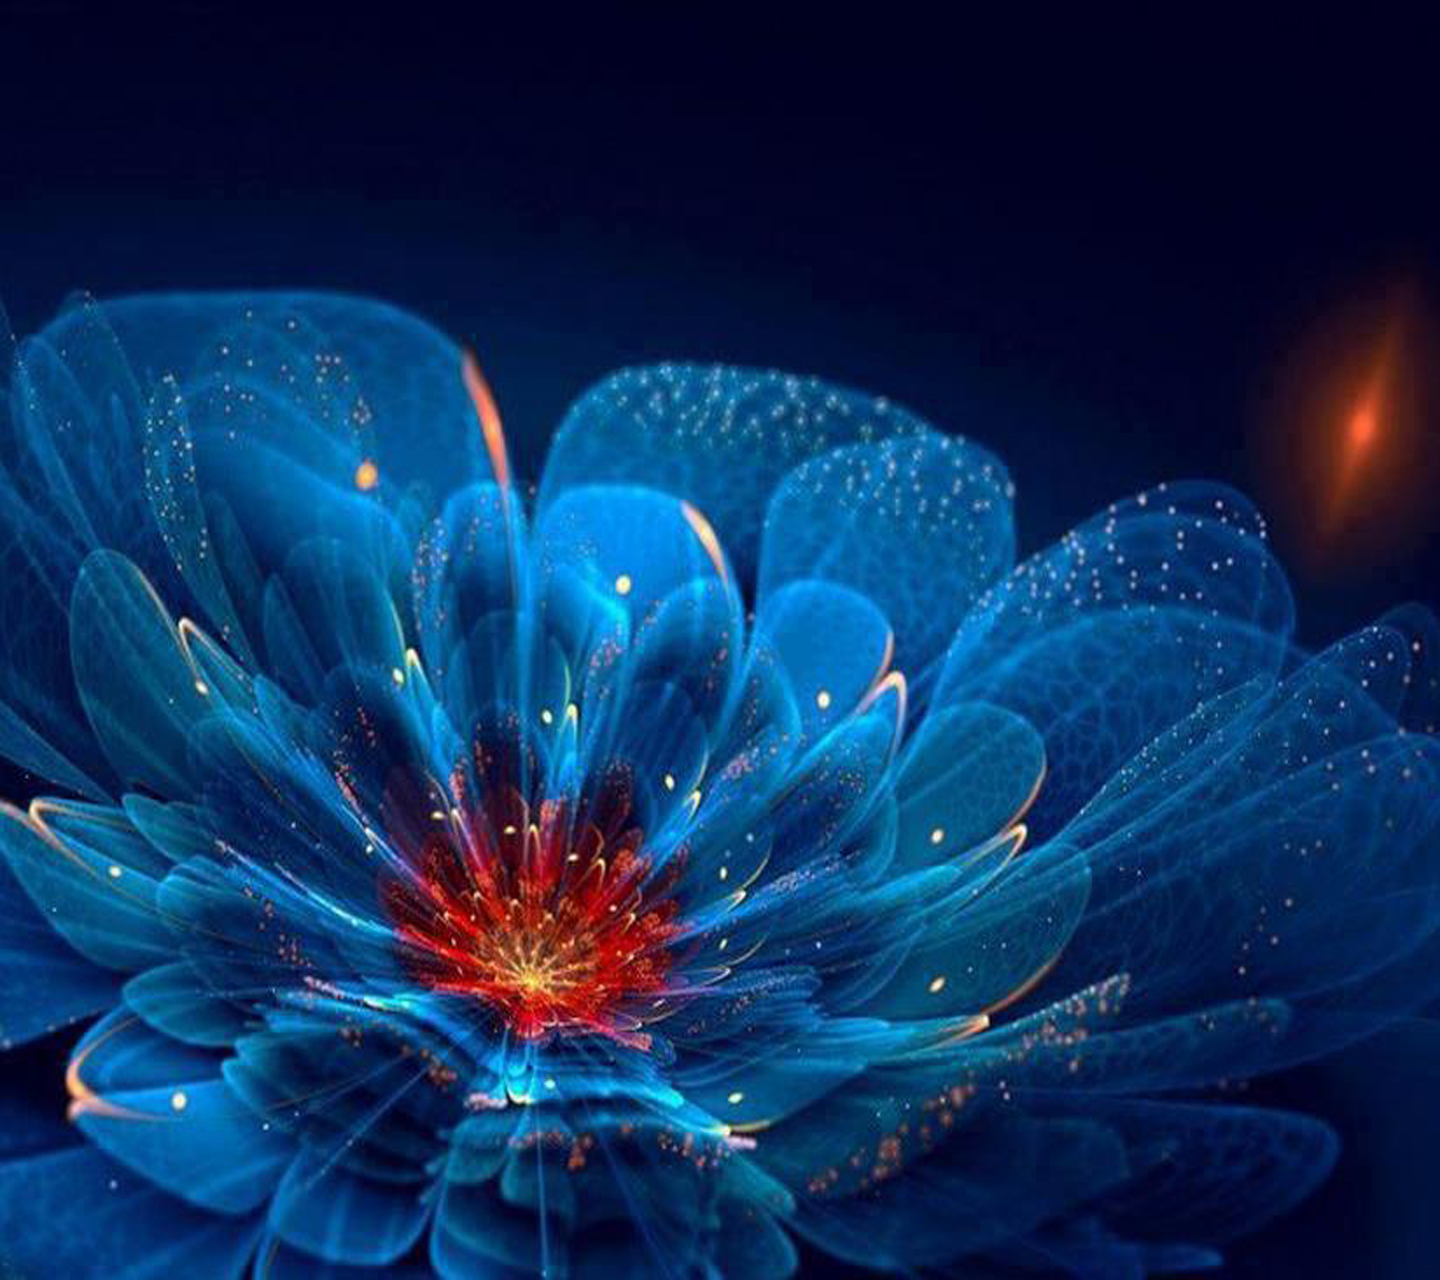 25 Colorful HD Wallpapers To Light Up Your Display